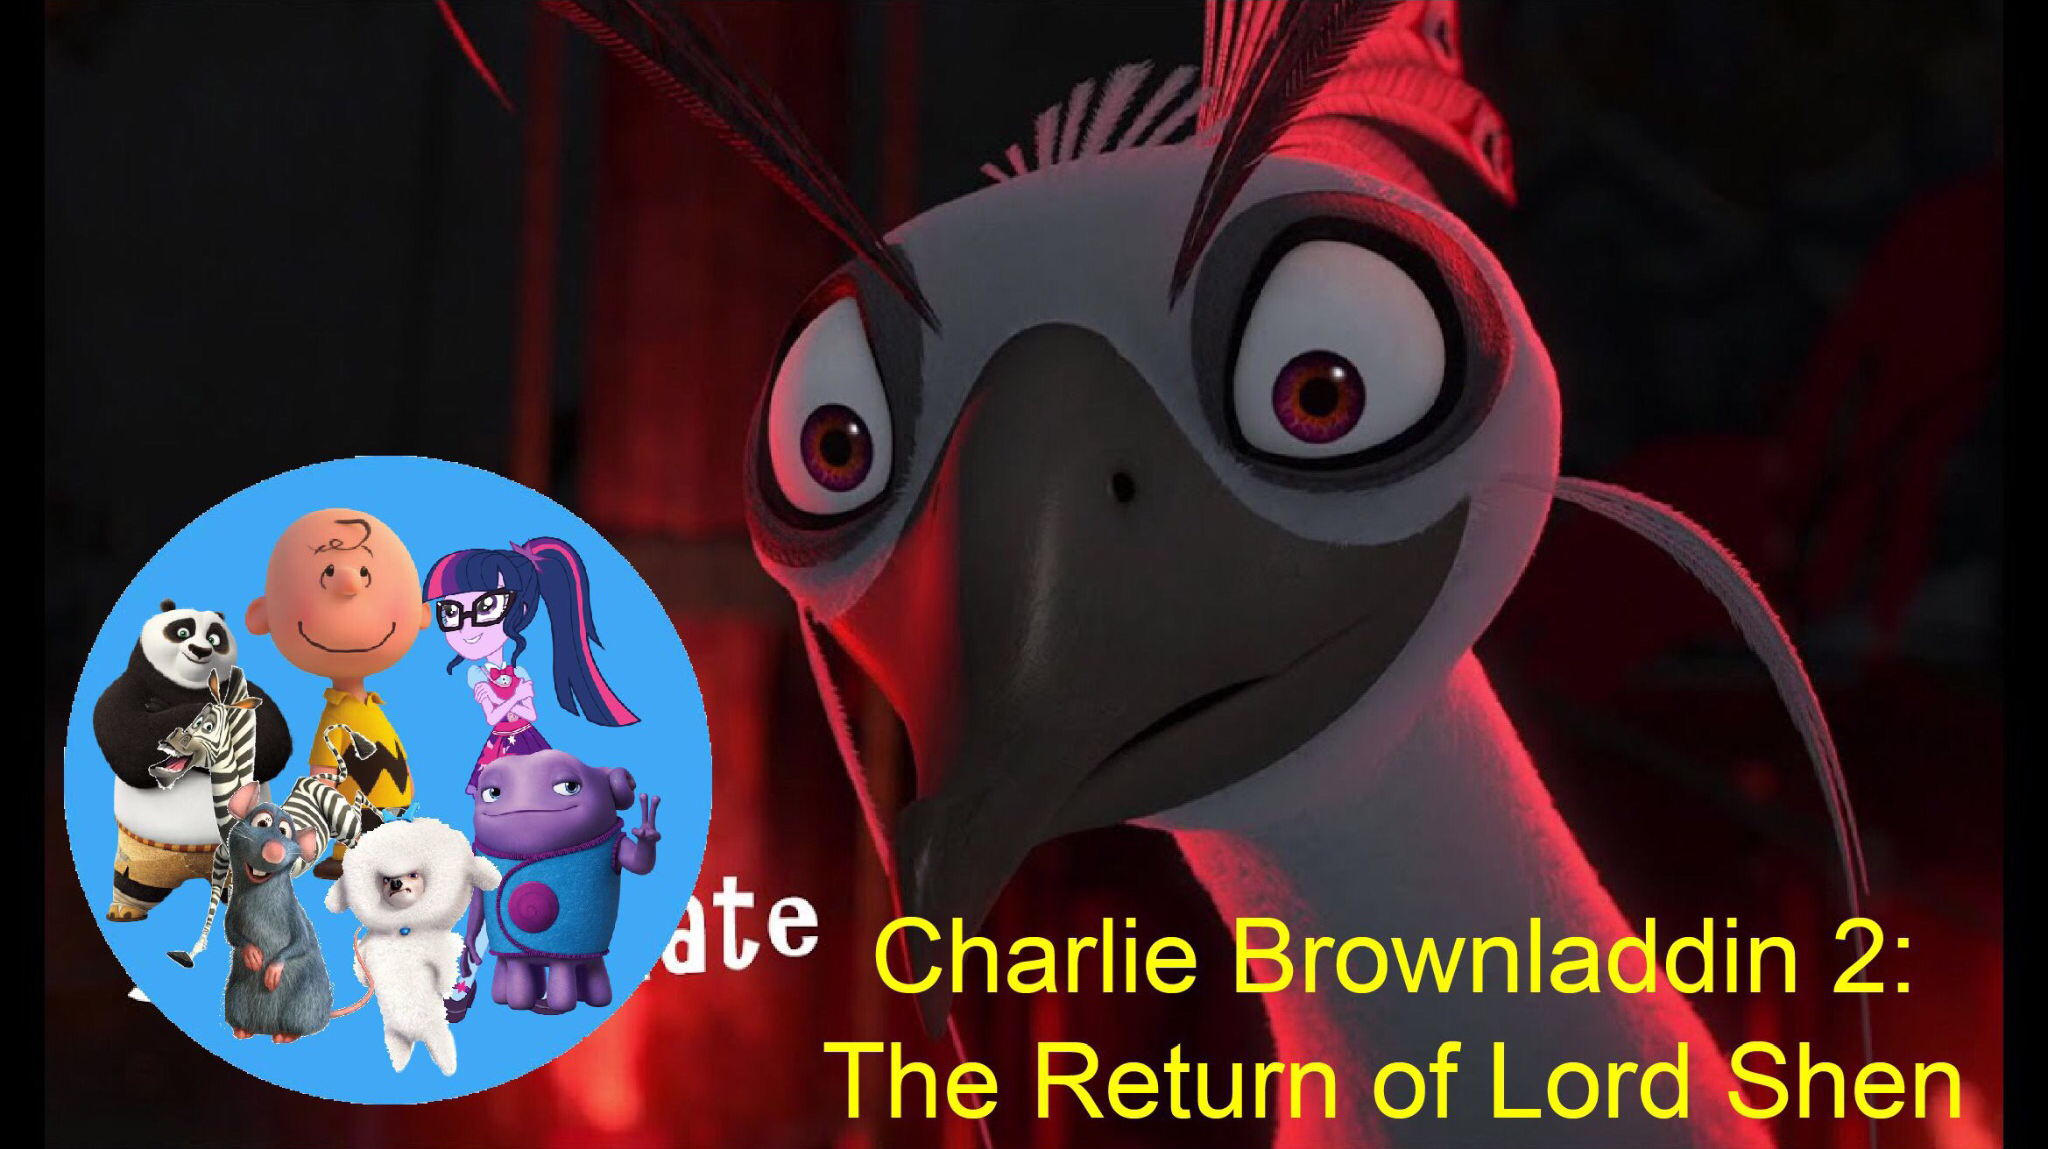 Charlie Brownladdin 2: The Return of Lord Shen